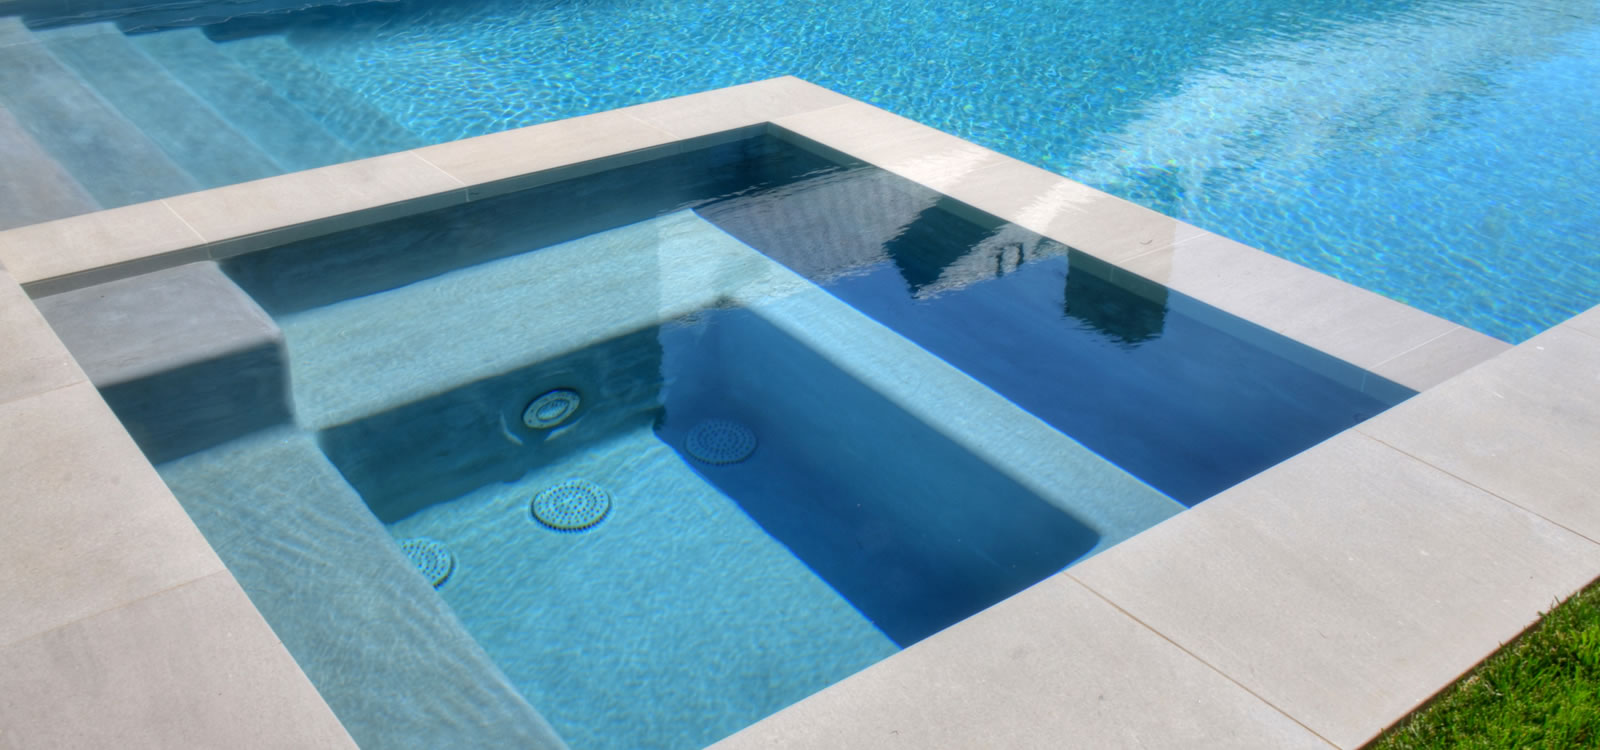 Santa Monica Pool & Spa Design w/ Pool Cover by John Crystal Pools ...